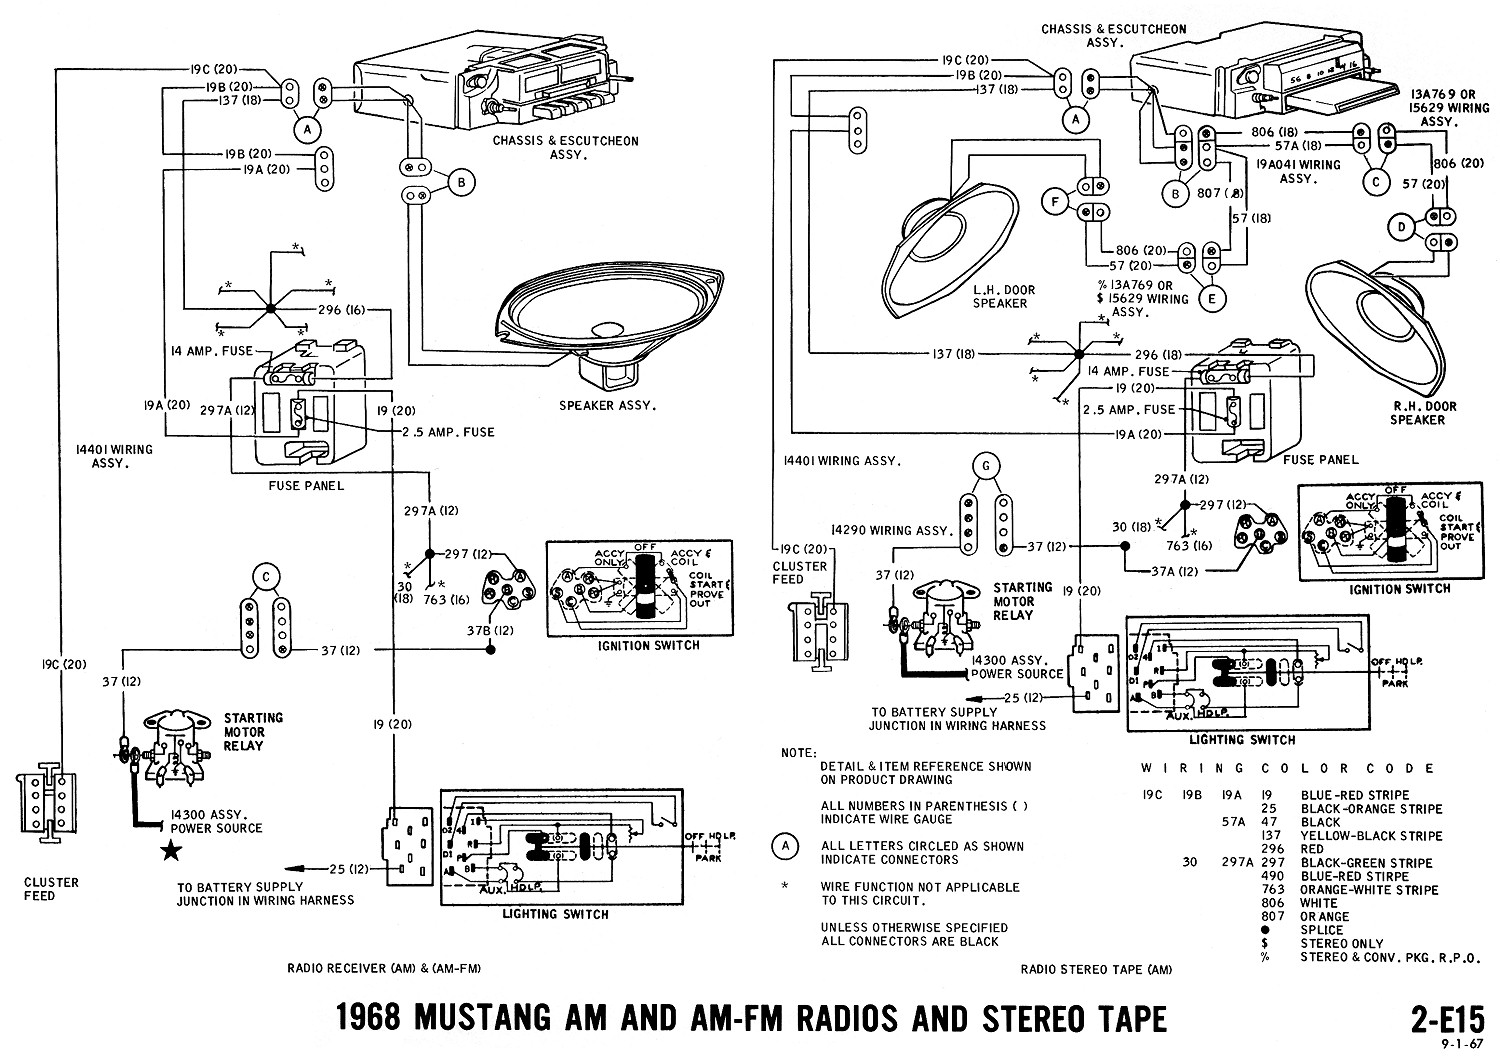 Wiring Diagram For 2005 Ford Mustang